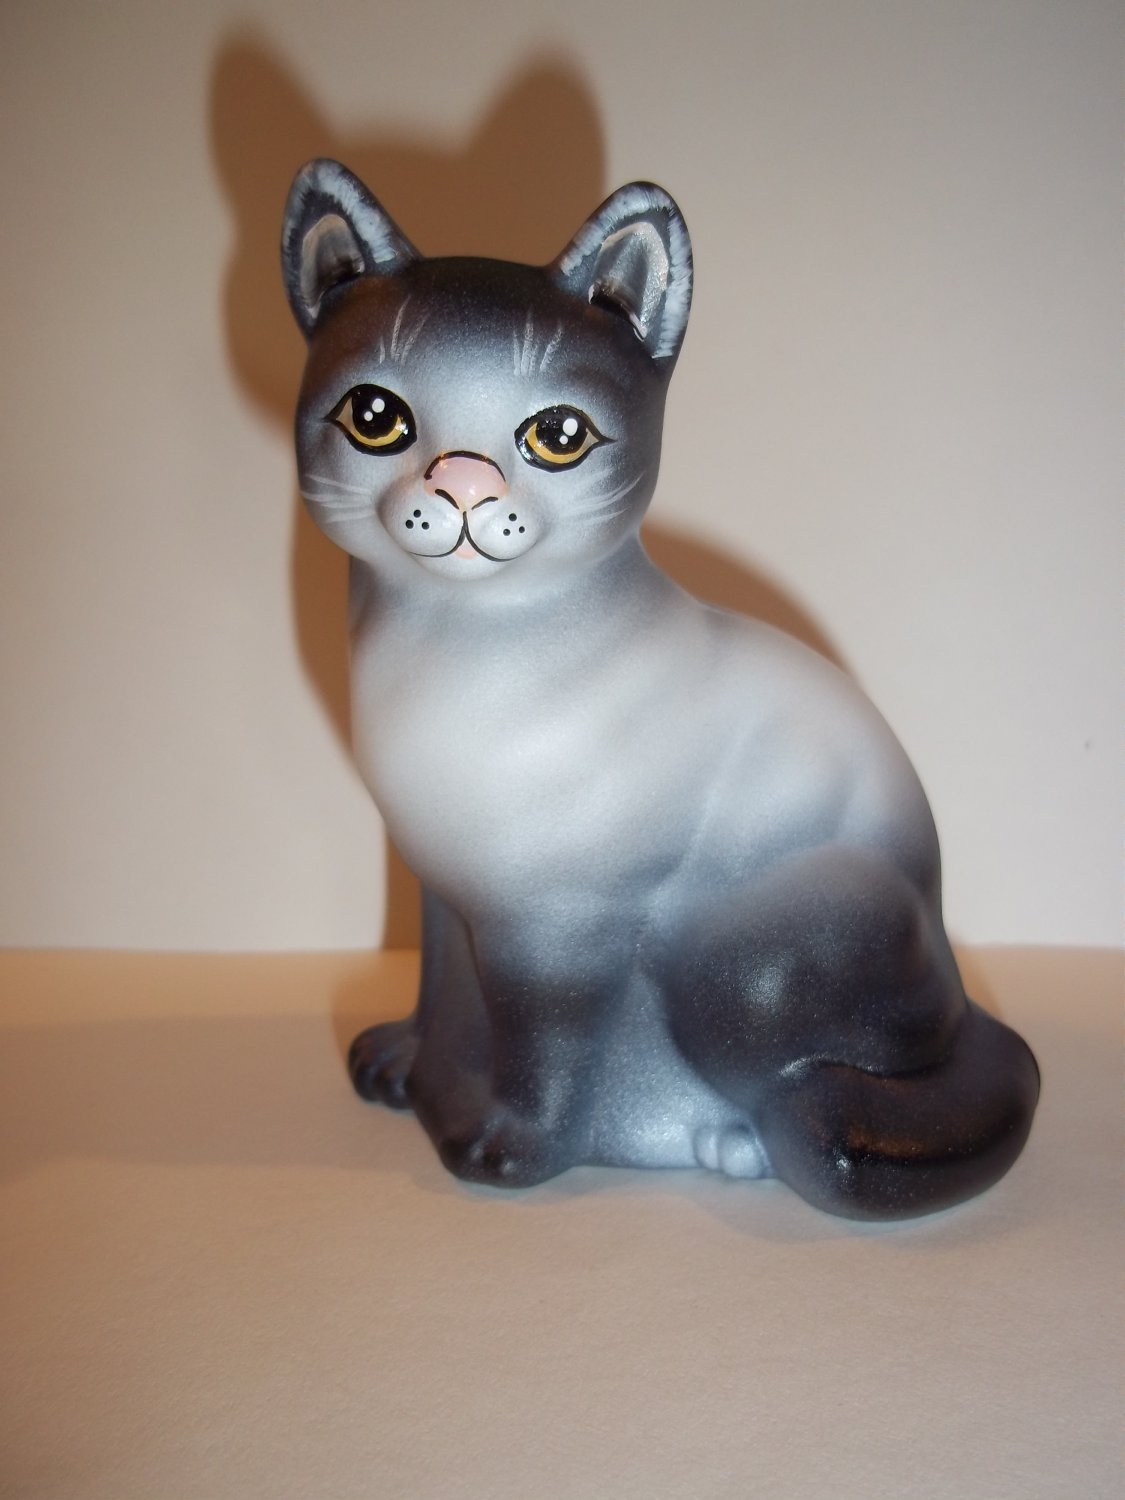 Fenton Glass Natural Gray Sitting Cat Figurine GSE Limited Edition #3/10 Kim Barley